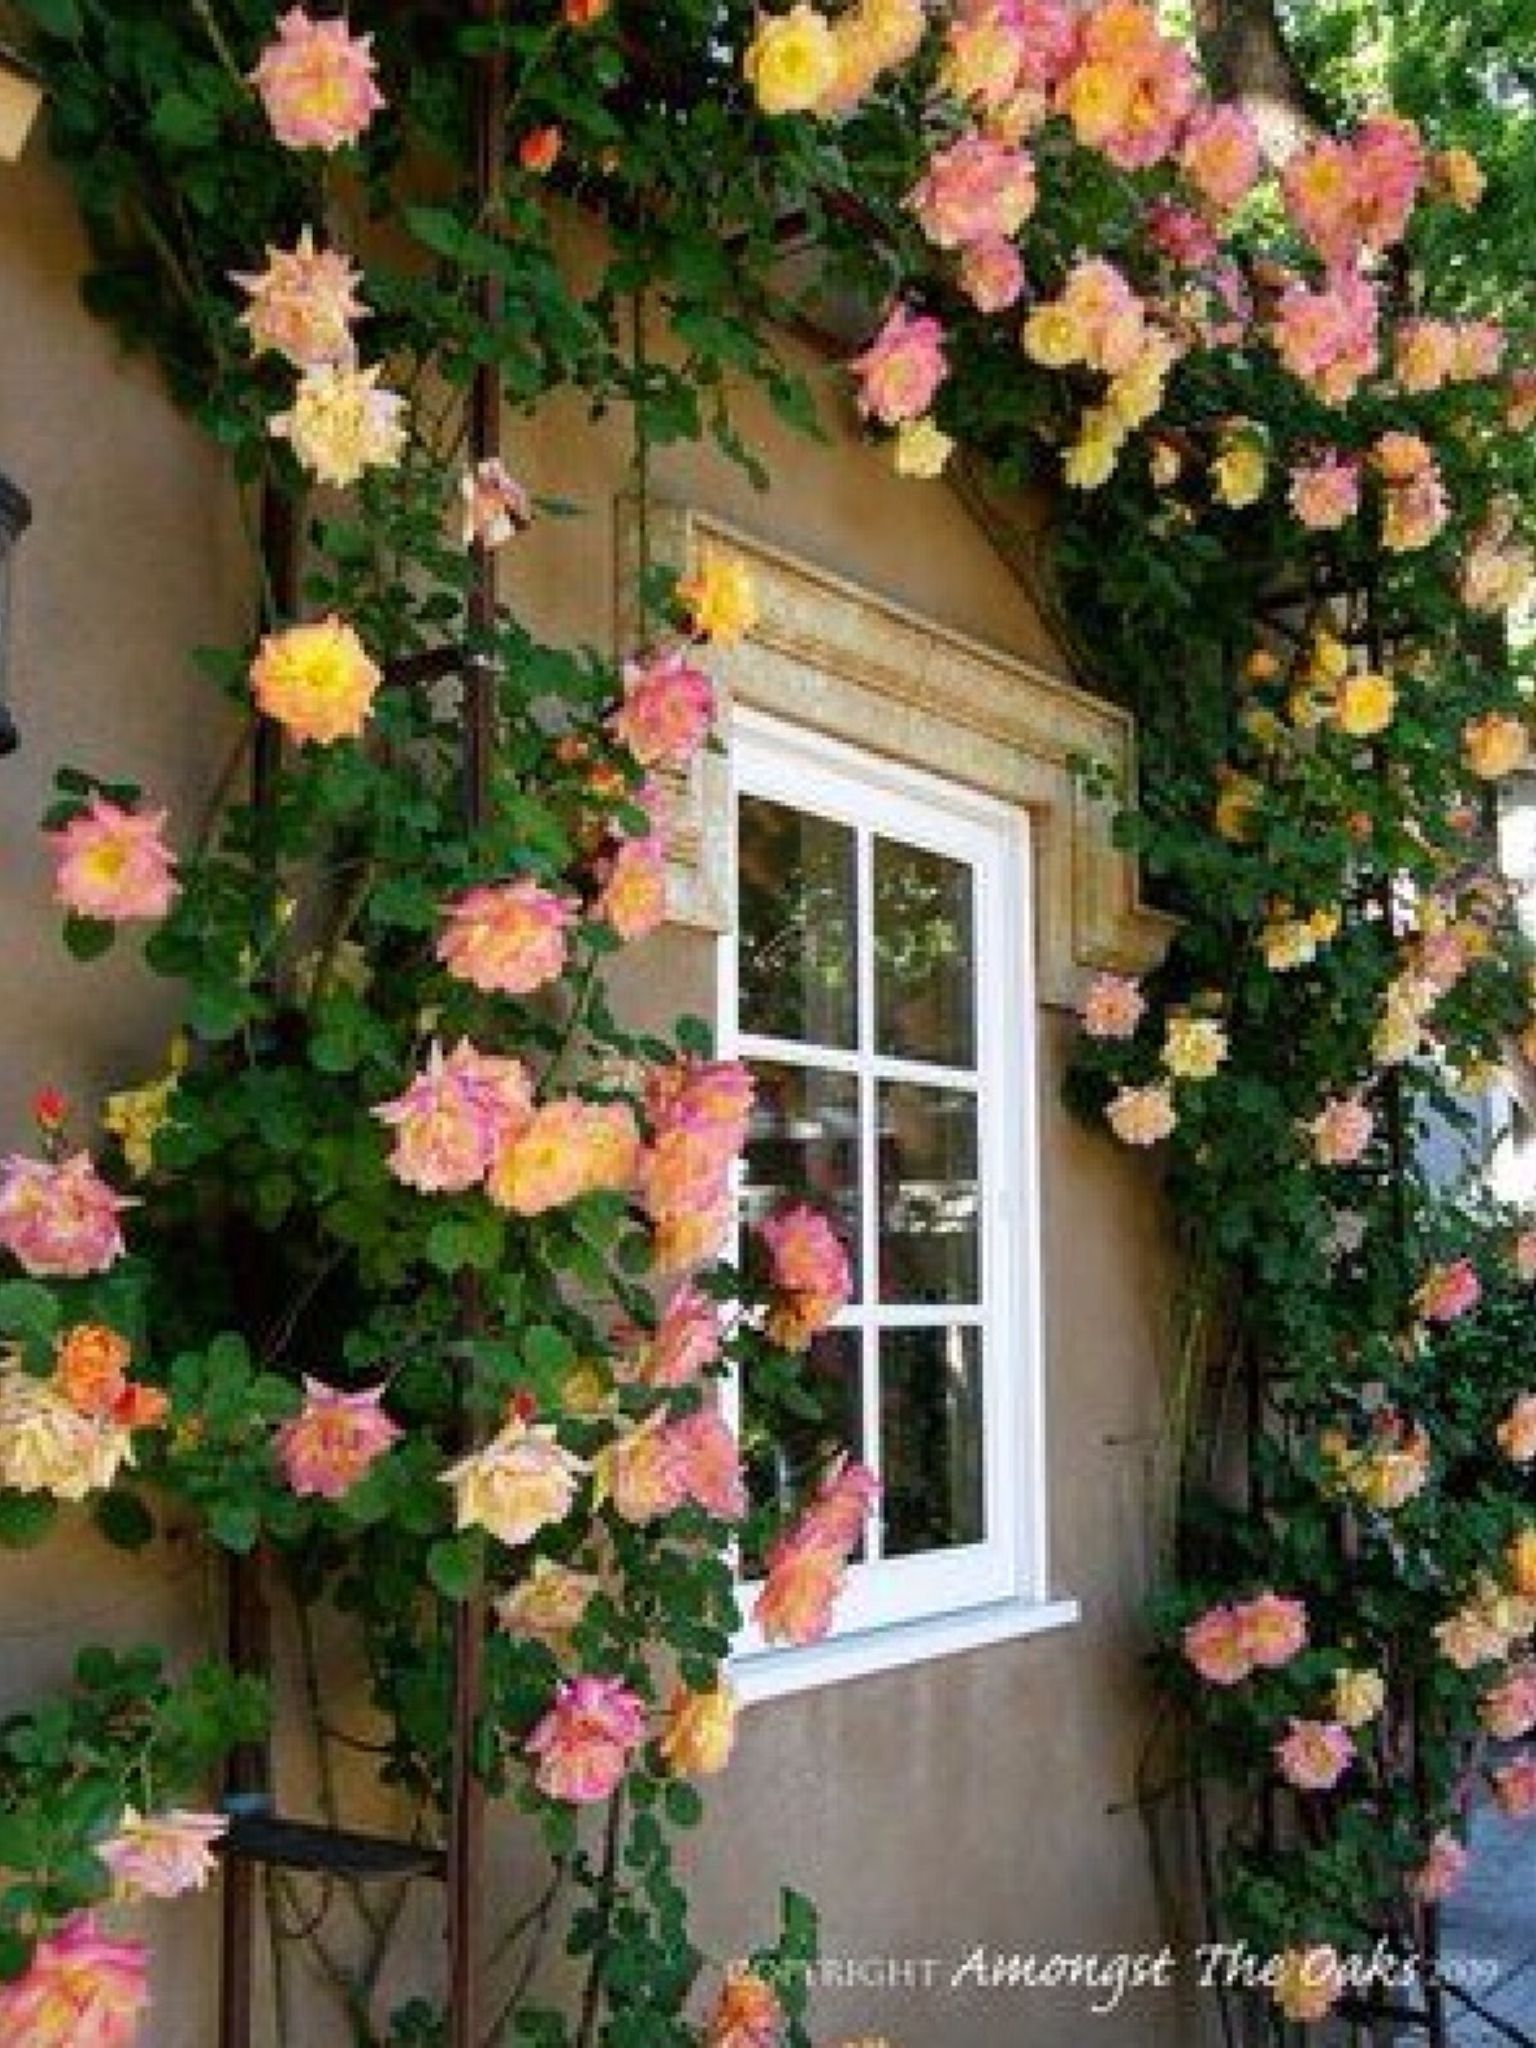 Charming Climbing Rose Trellis Ideas Part - 10: Climbing Roses